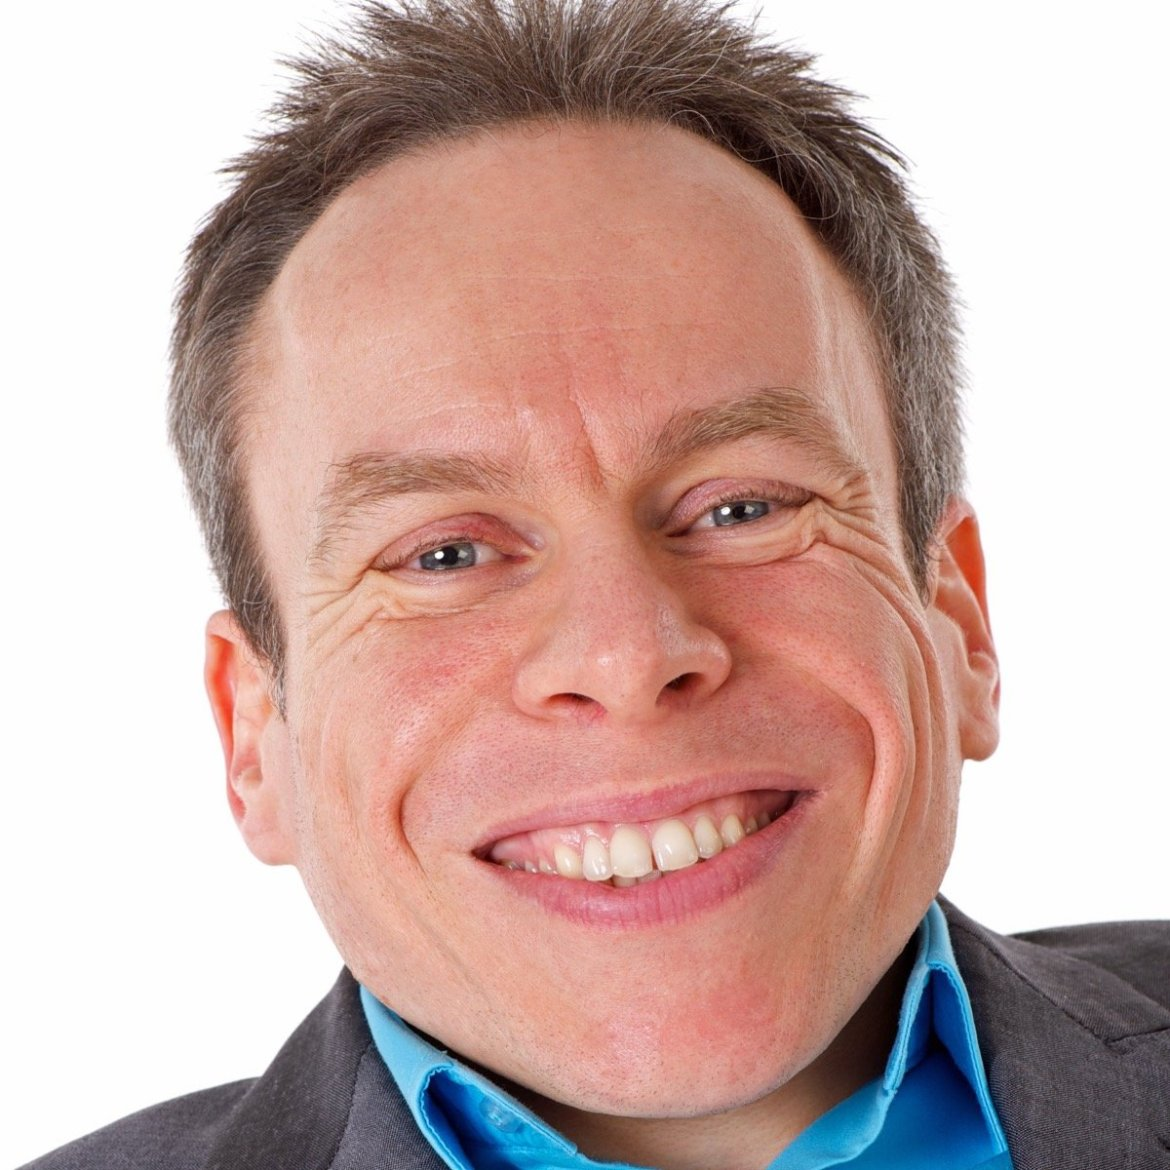 Warwick Davis Confirms He's Been Cast In Star Wars Episode VIII